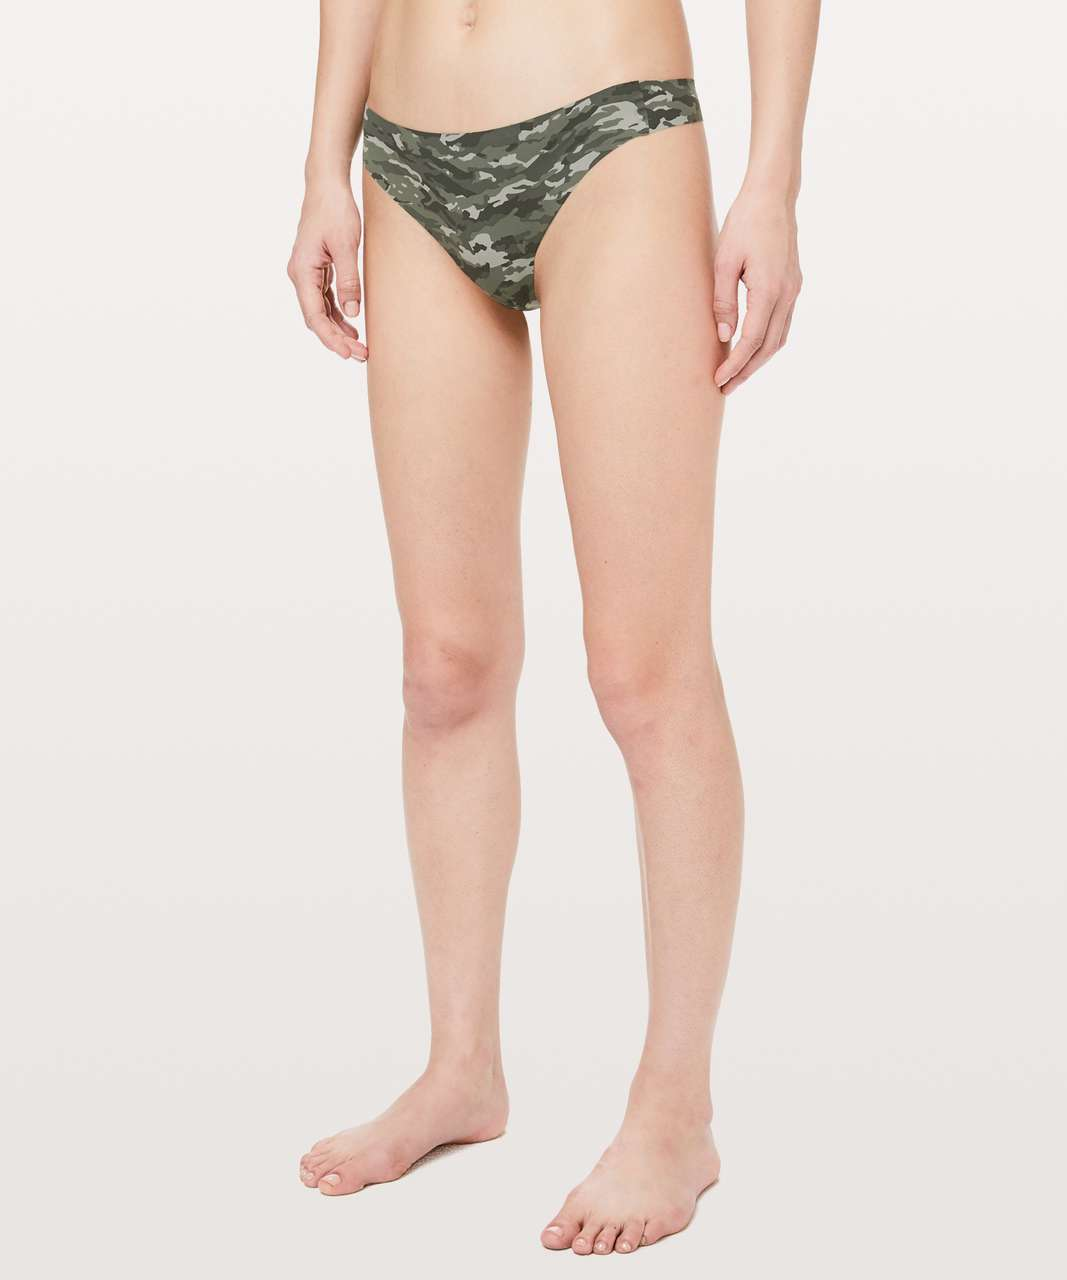 Lululemon Namastay Put Thong II - Evergreen Camo Green Multi